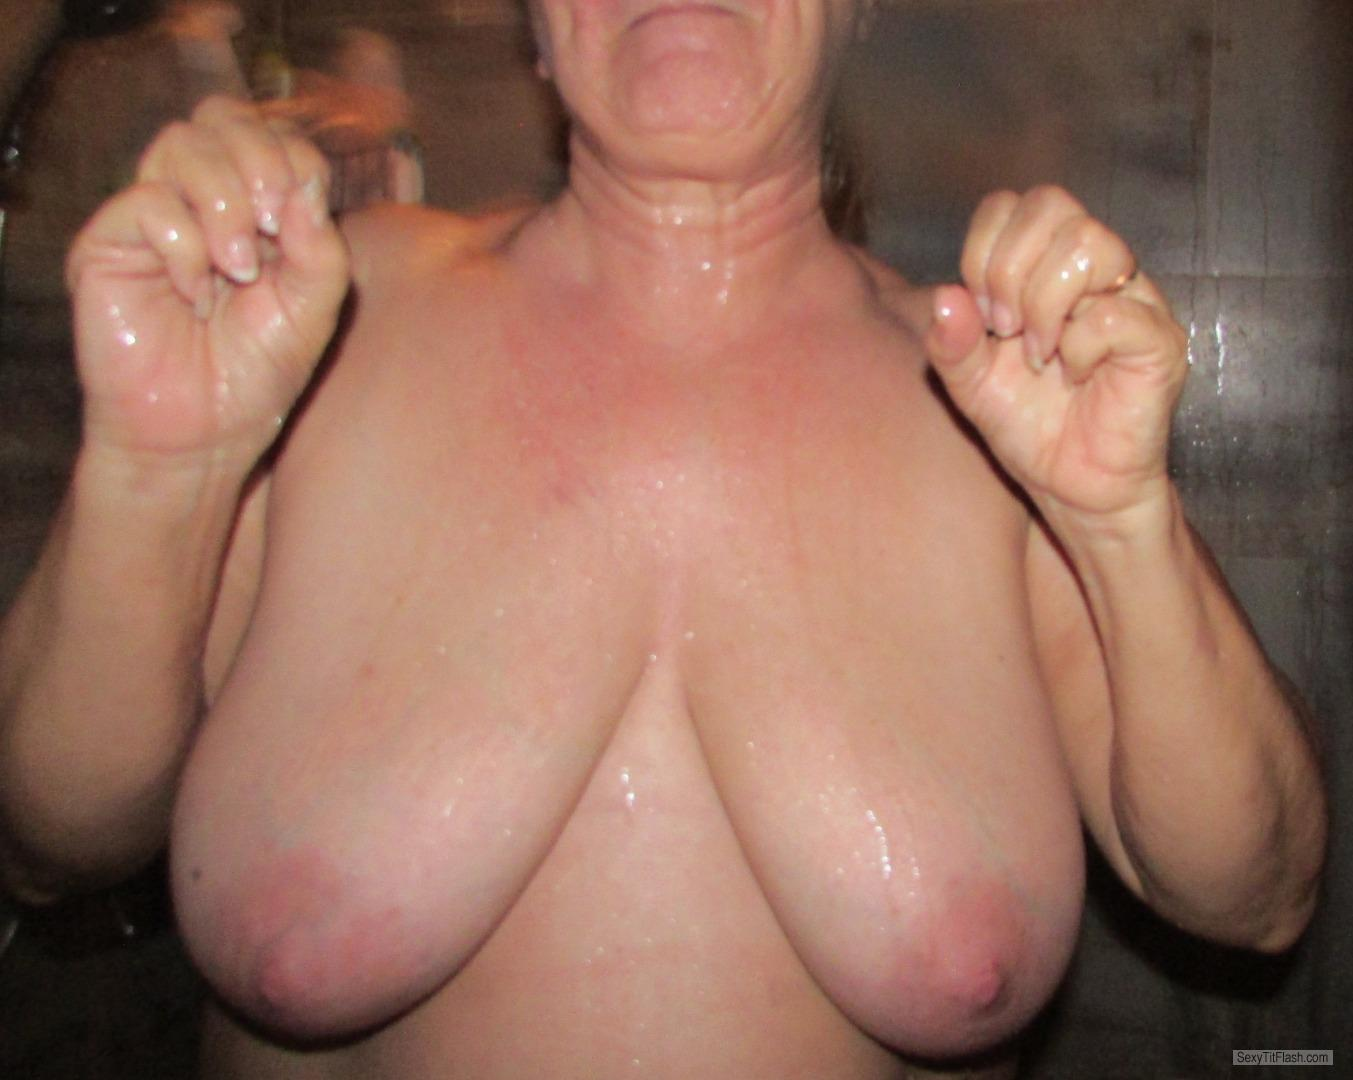 Tit Flash: Wife's Very Big Tits - LADY LOVE from United States